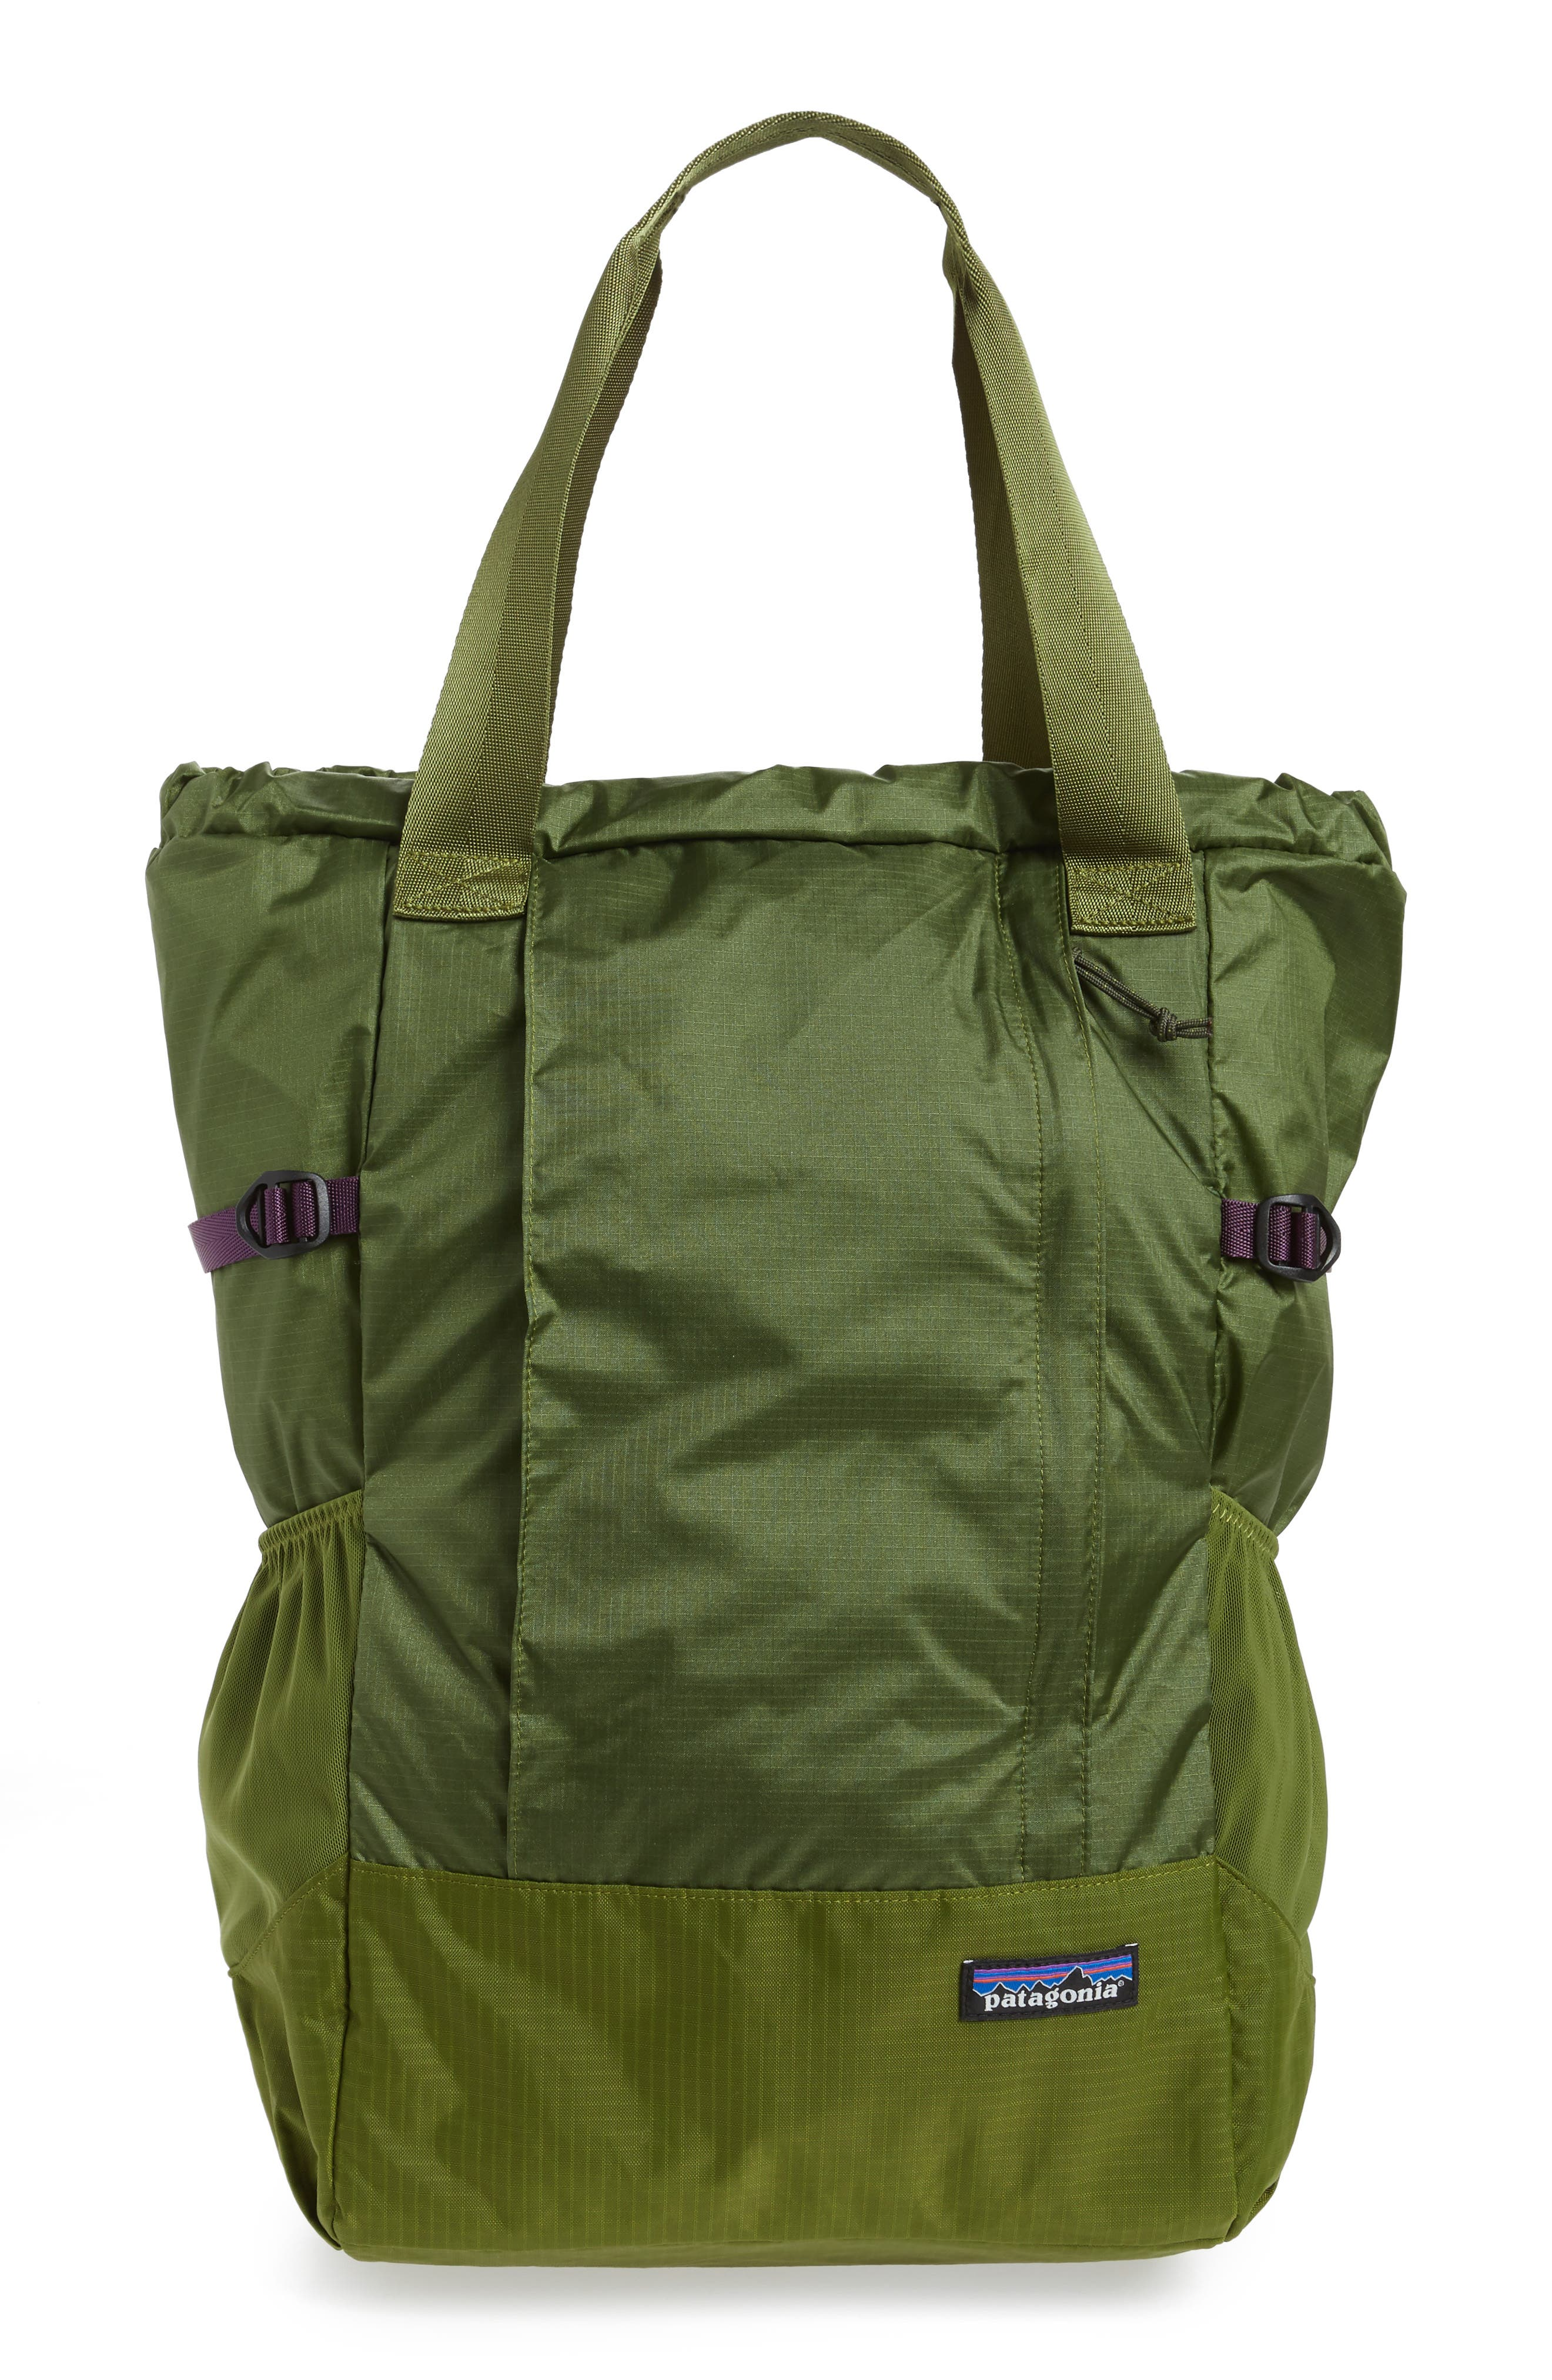 Lightweight Travel Tote Pack,                             Main thumbnail 1, color,                             305